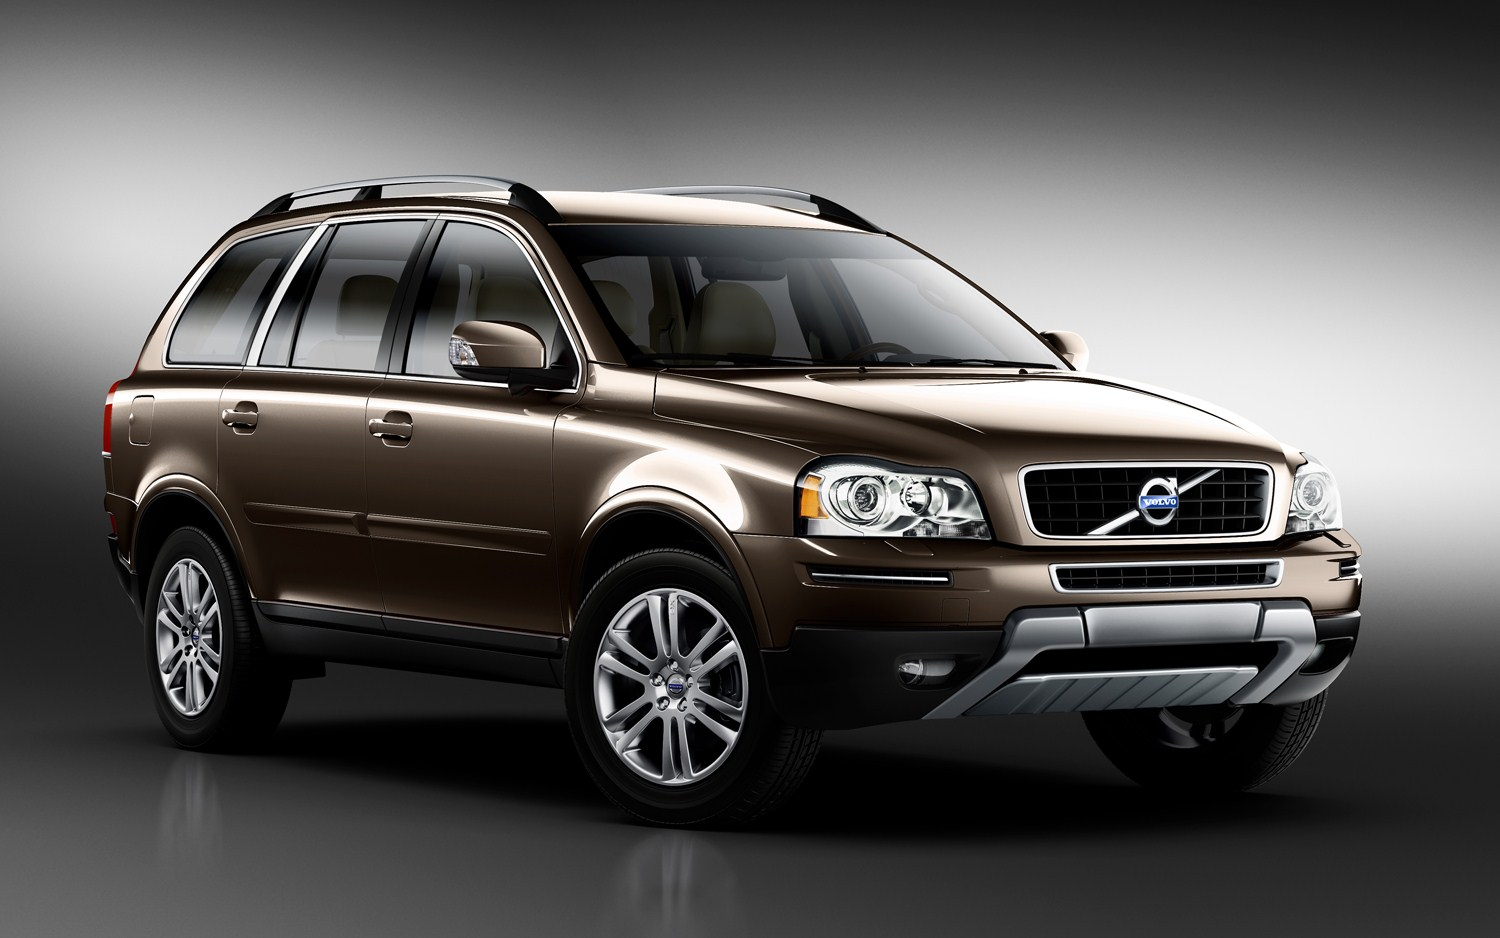 volvo xc 90 images car hd wallpapers prices review. Black Bedroom Furniture Sets. Home Design Ideas